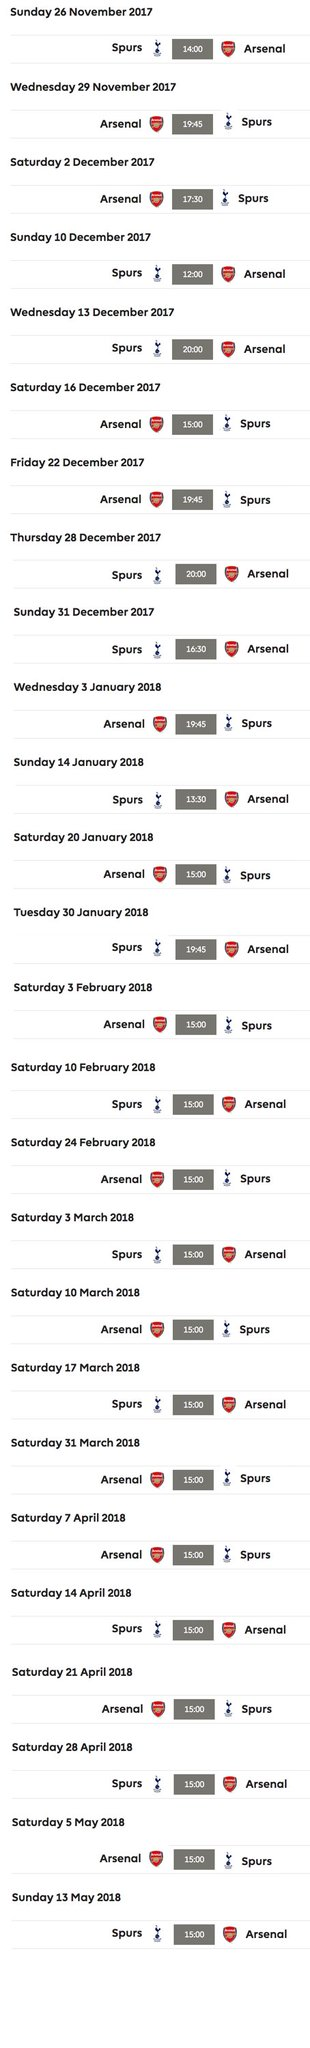 How Arsenal can still win the Premier League: keep showing the team this fixture list. #ARSTOT https://t.co/P0X2DPYY6n